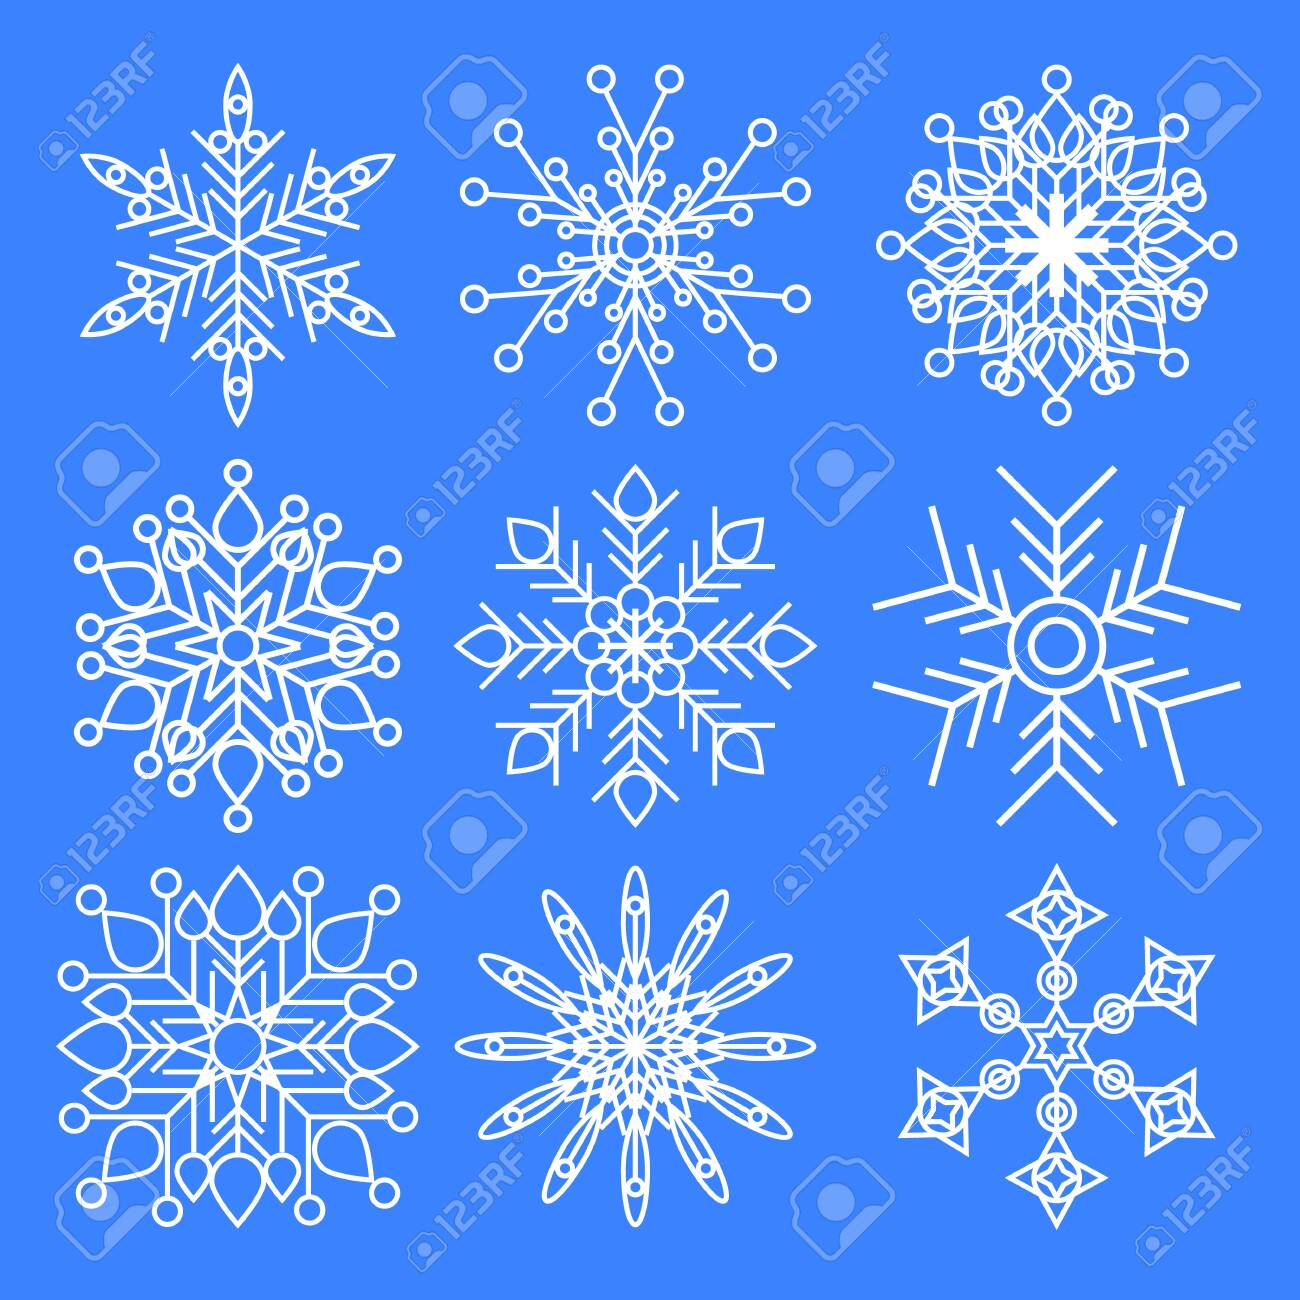 Set of Christmas snowflakes isolated on blue background - 137763946